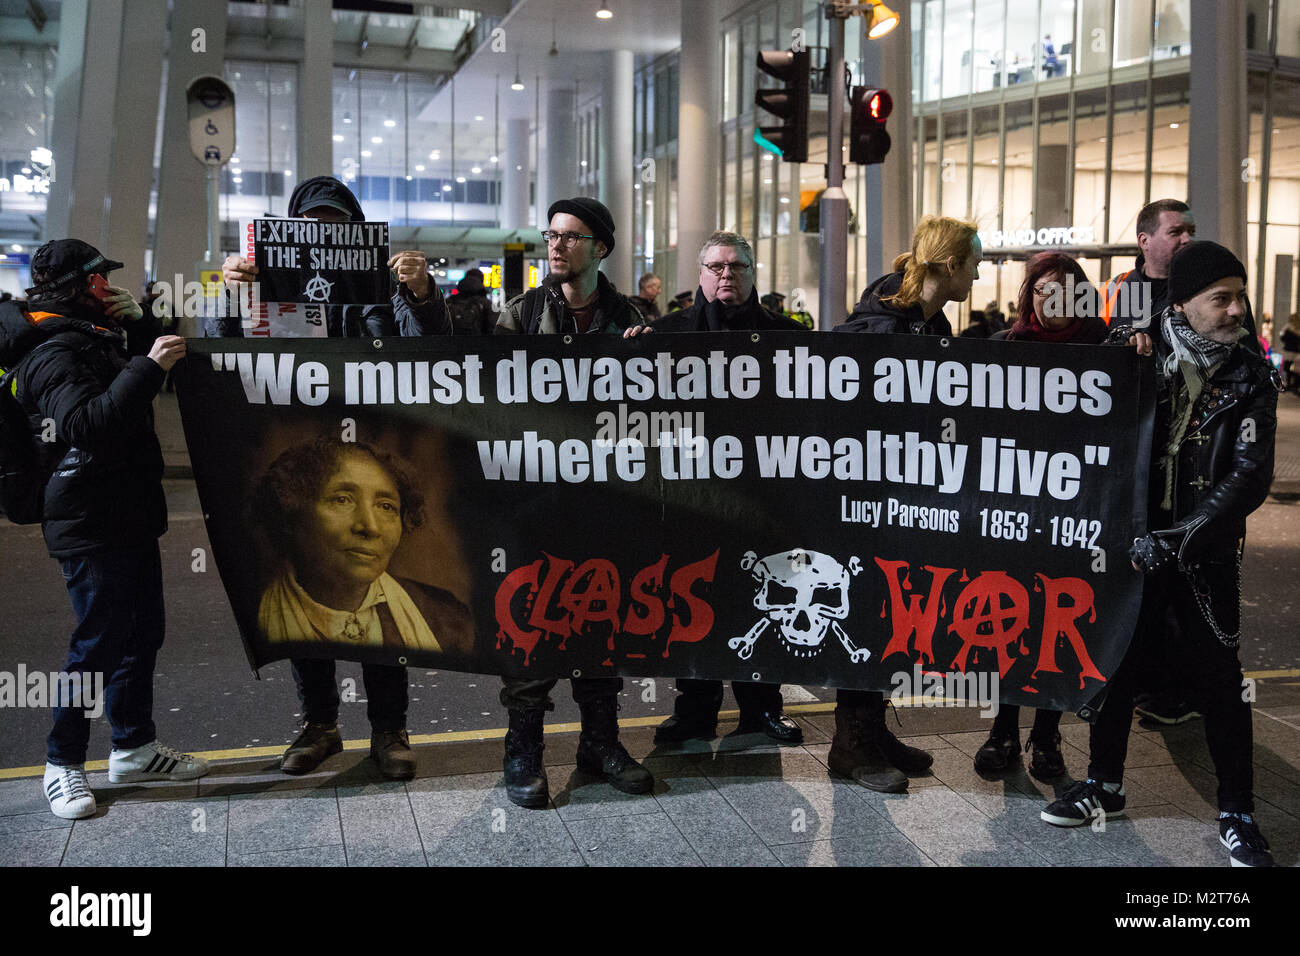 London, UK. 8th February, 2018. Supporters of Class War commence a weekly protest outside the Shard after it was - Stock Image